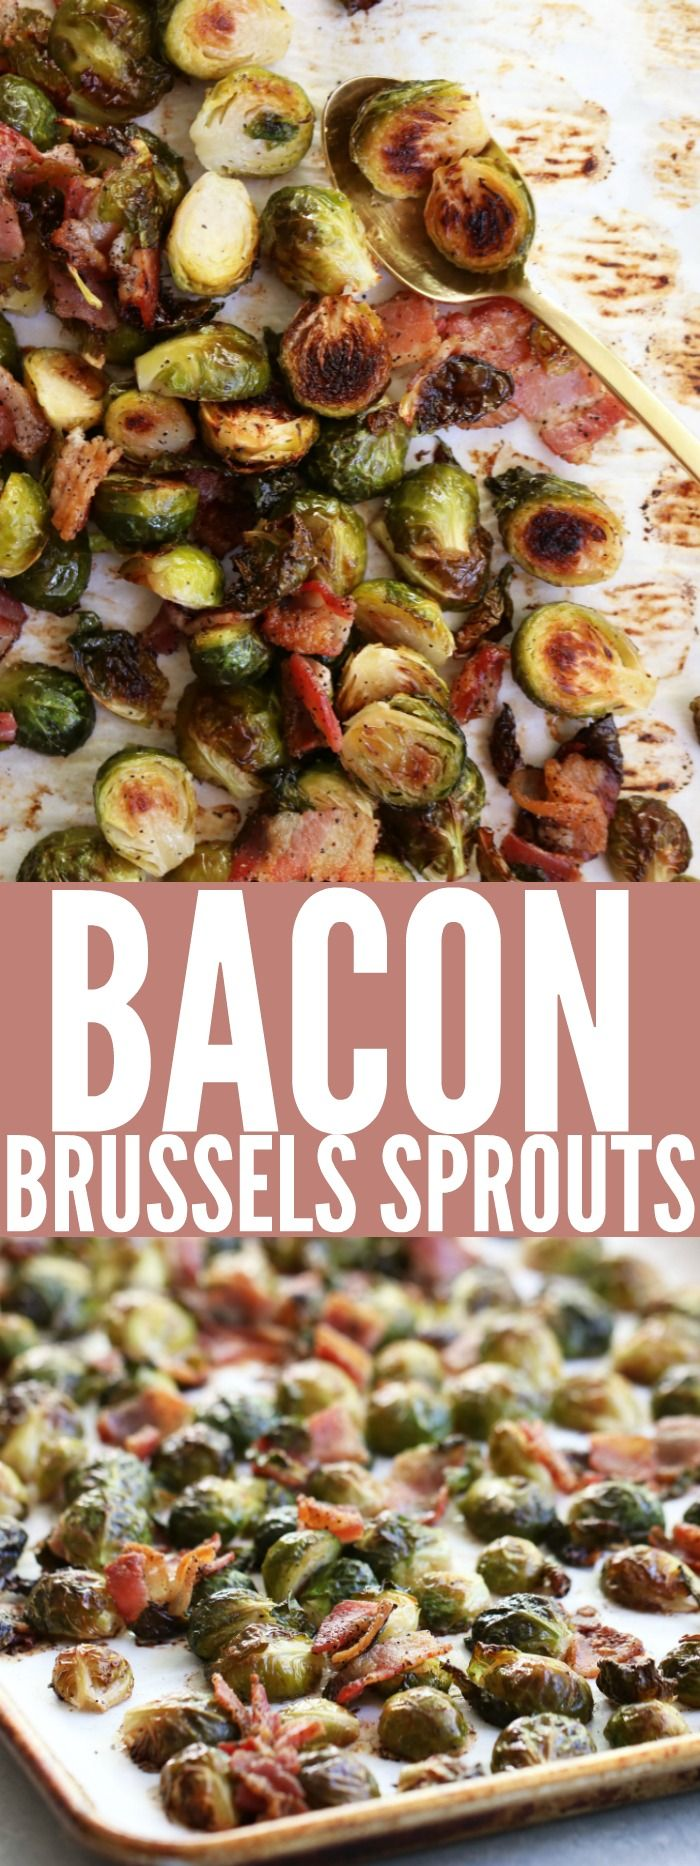 The BEST and only Brussels Sprouts recipe you'll ever need! This Bacon Brussels Sprouts appetizer is low carb, gluten free, and paleo! You'll love it! thetoastedpinenut.com #lowcarb #glutenfree